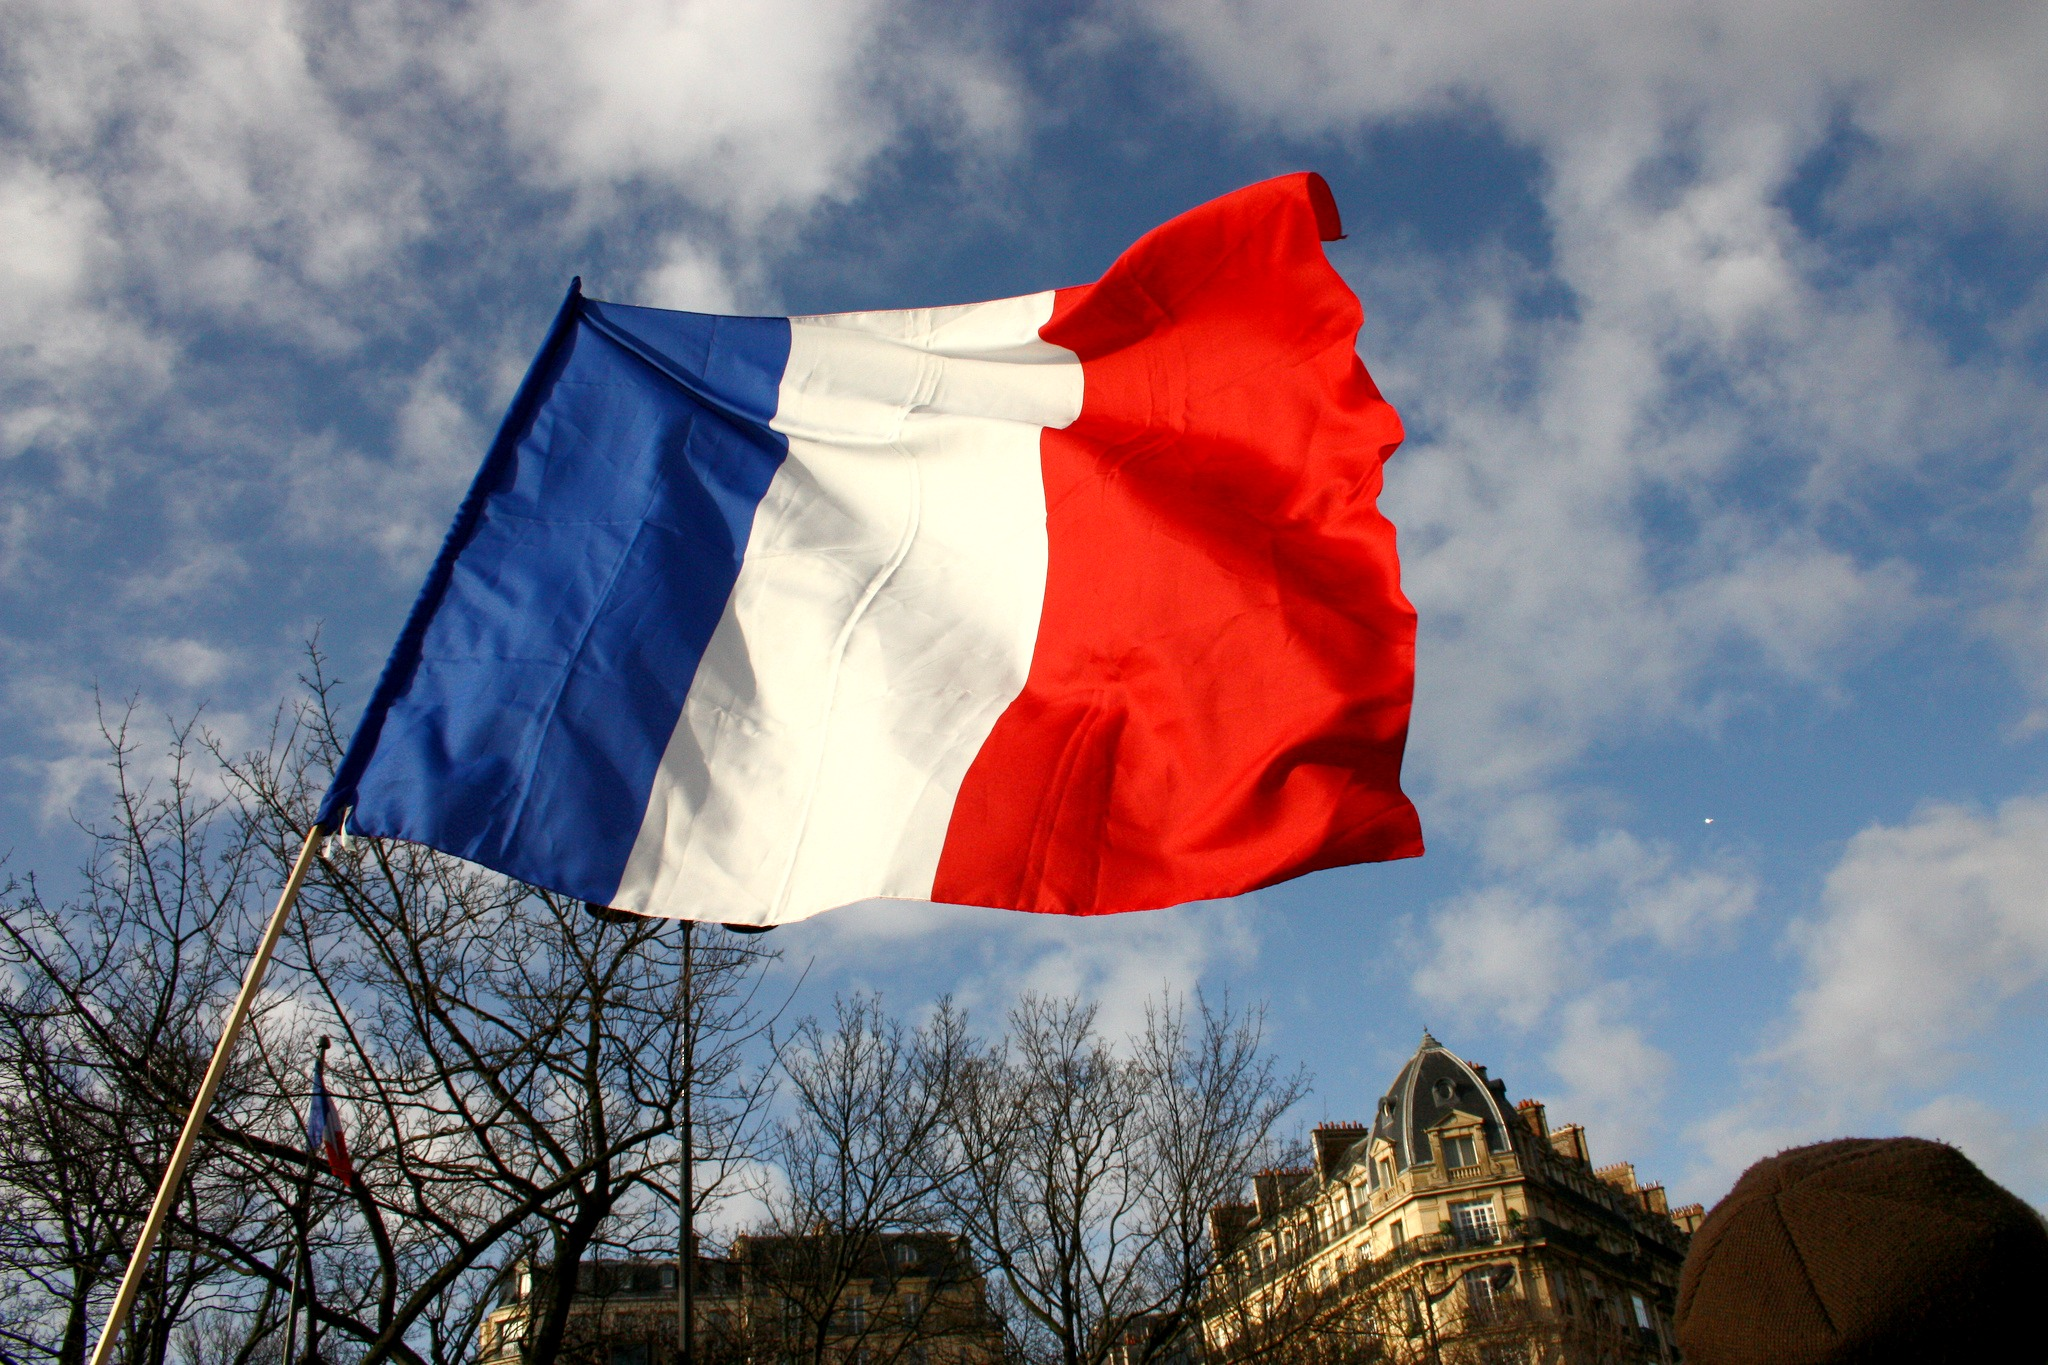 French – hardest language to learn